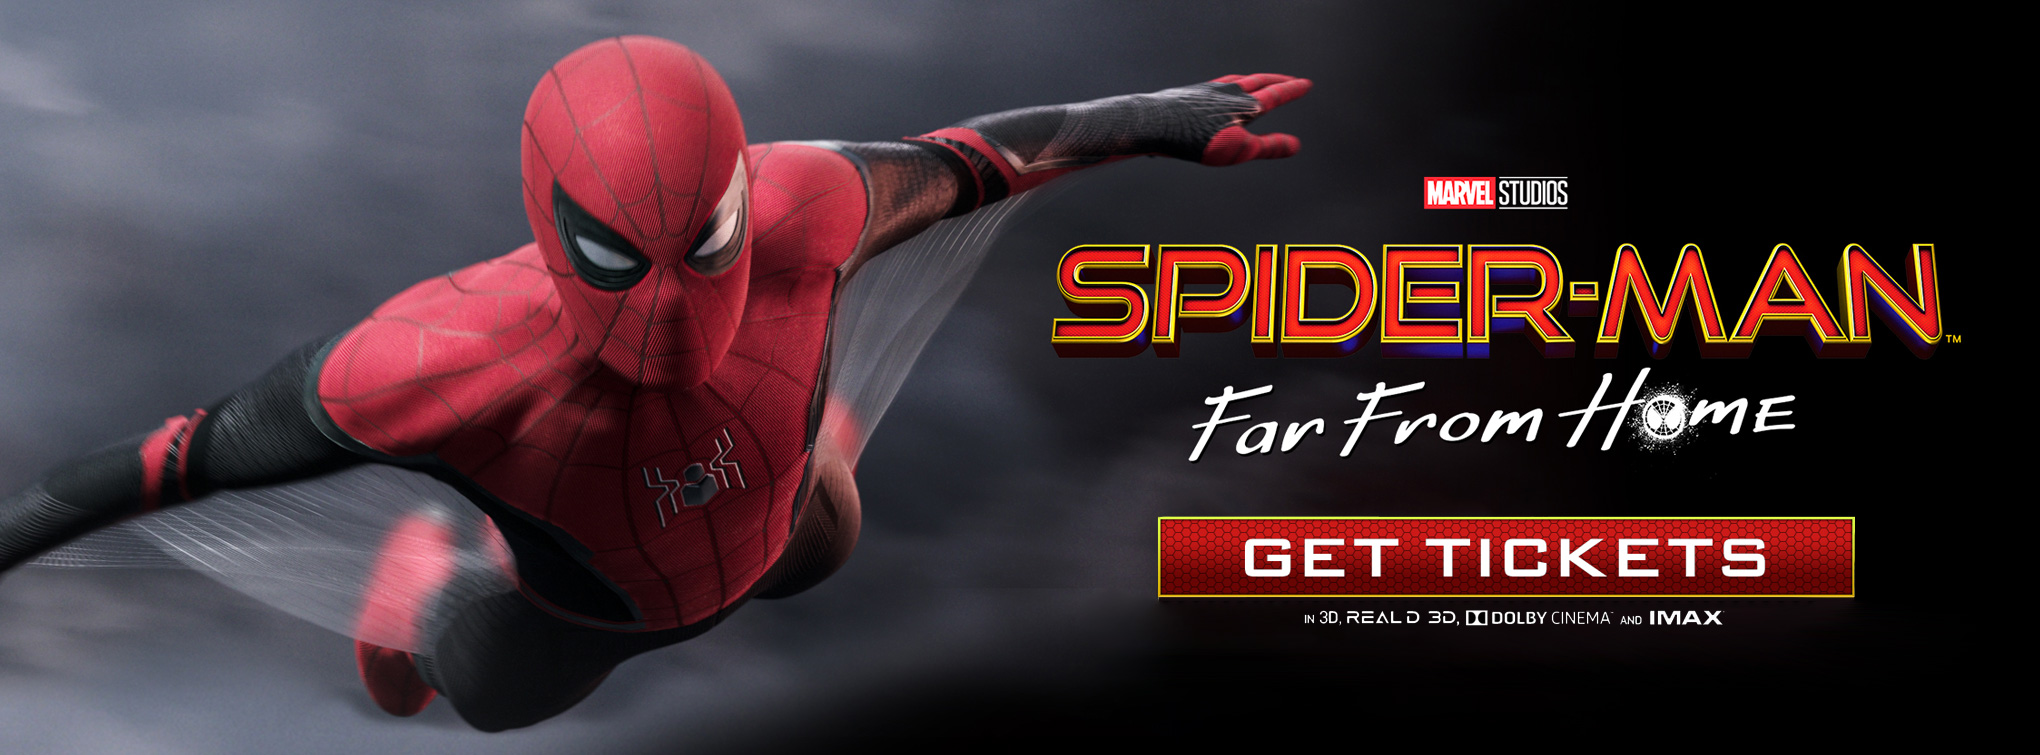 Slider image for Spider-Man: Far From Home